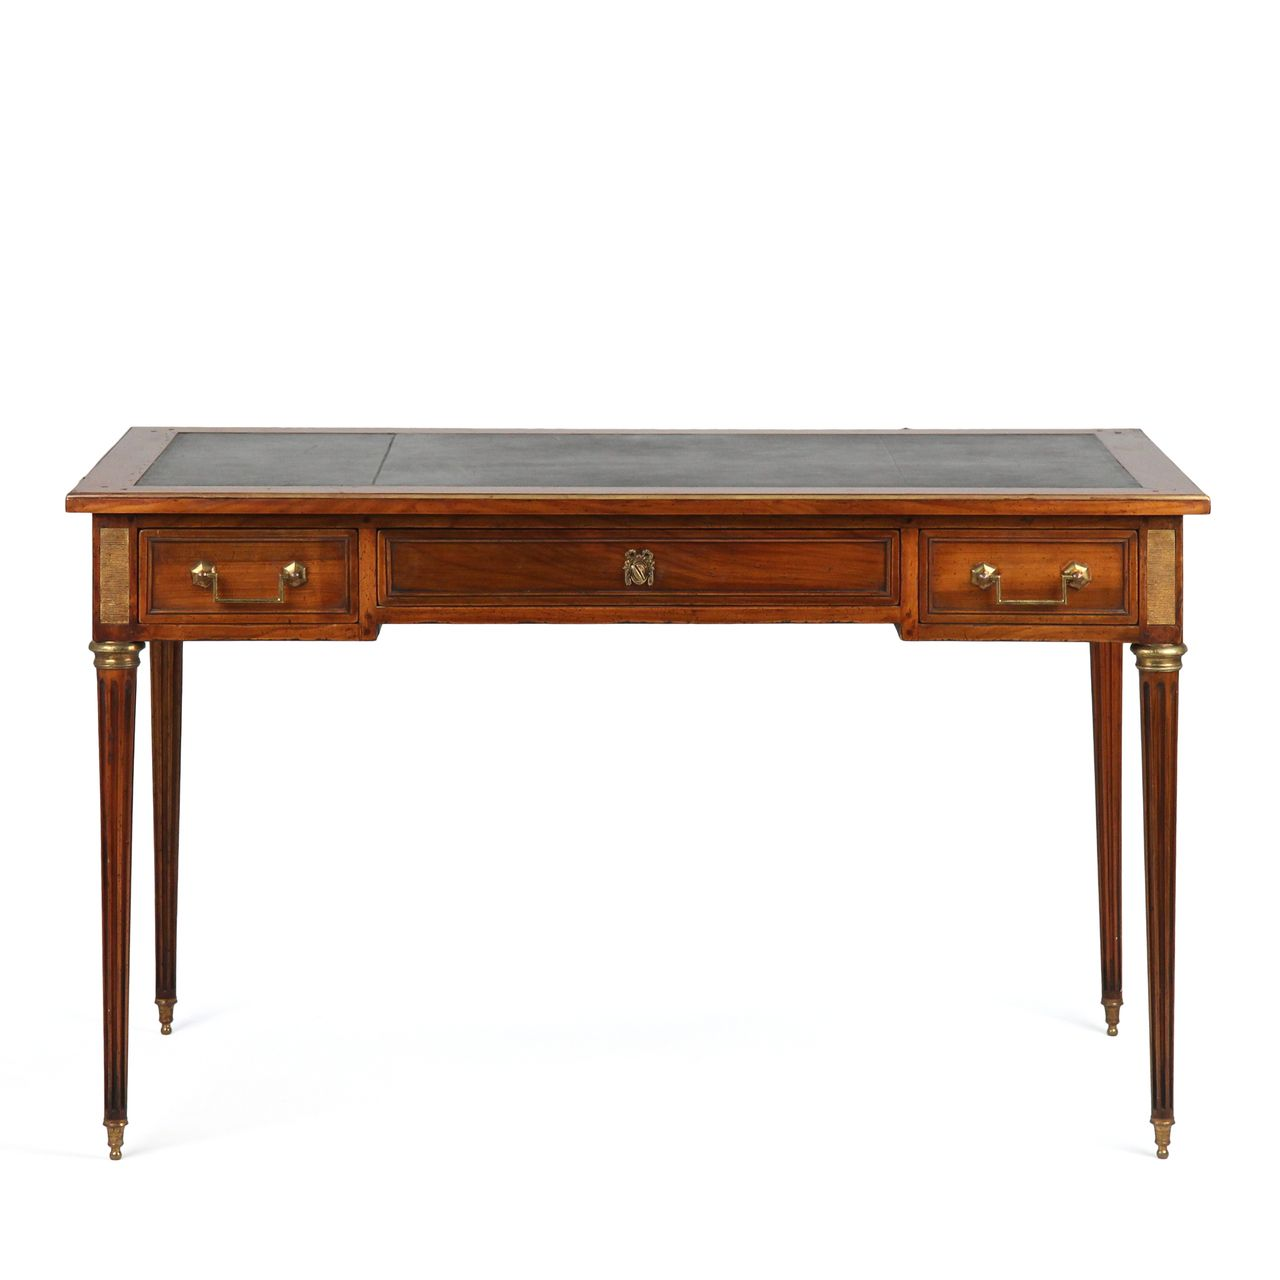 French Louis XVI Style Antique Leather Top Writing Desk or Table, c. 1920-40 - French Louis XVI Style Antique Leather Top Writing Desk Or Table